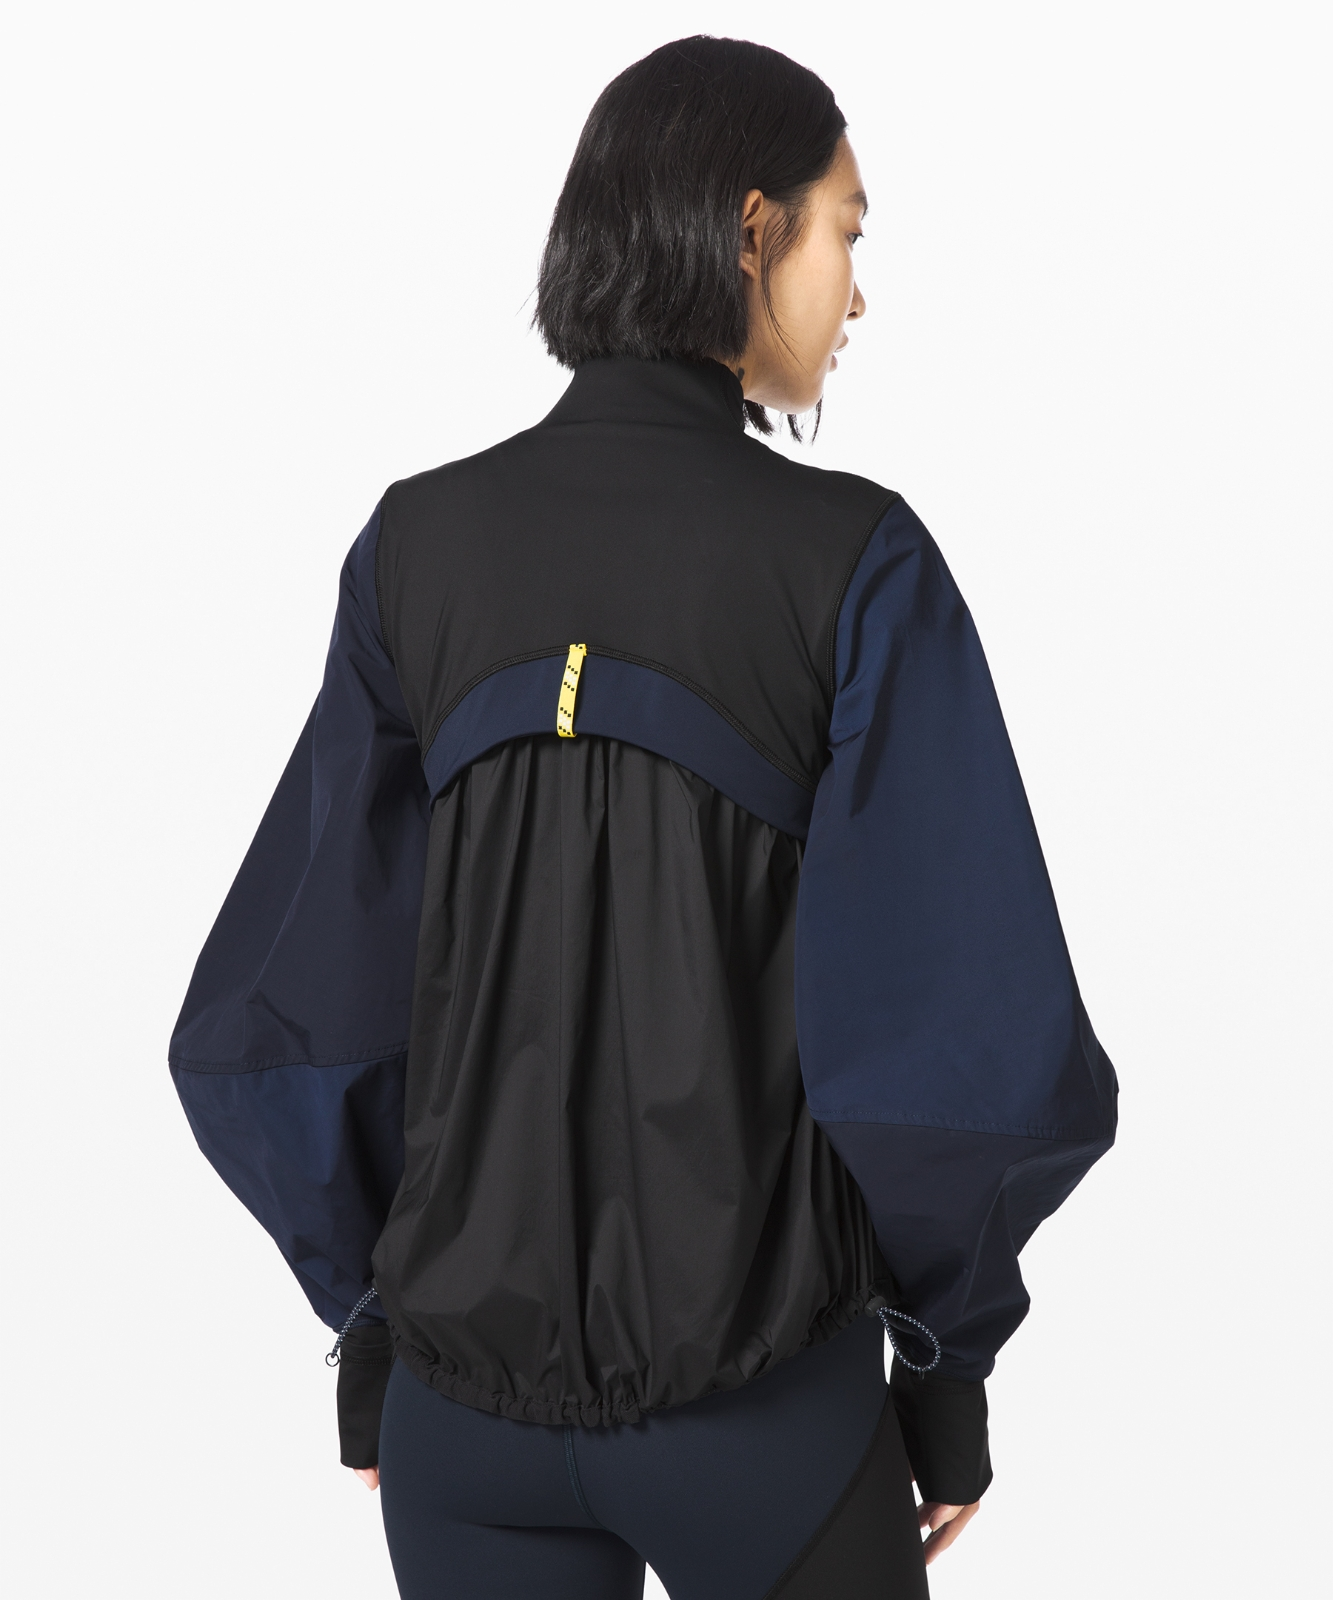 Face Forward Define Jacket, Lululemon x Roksanda